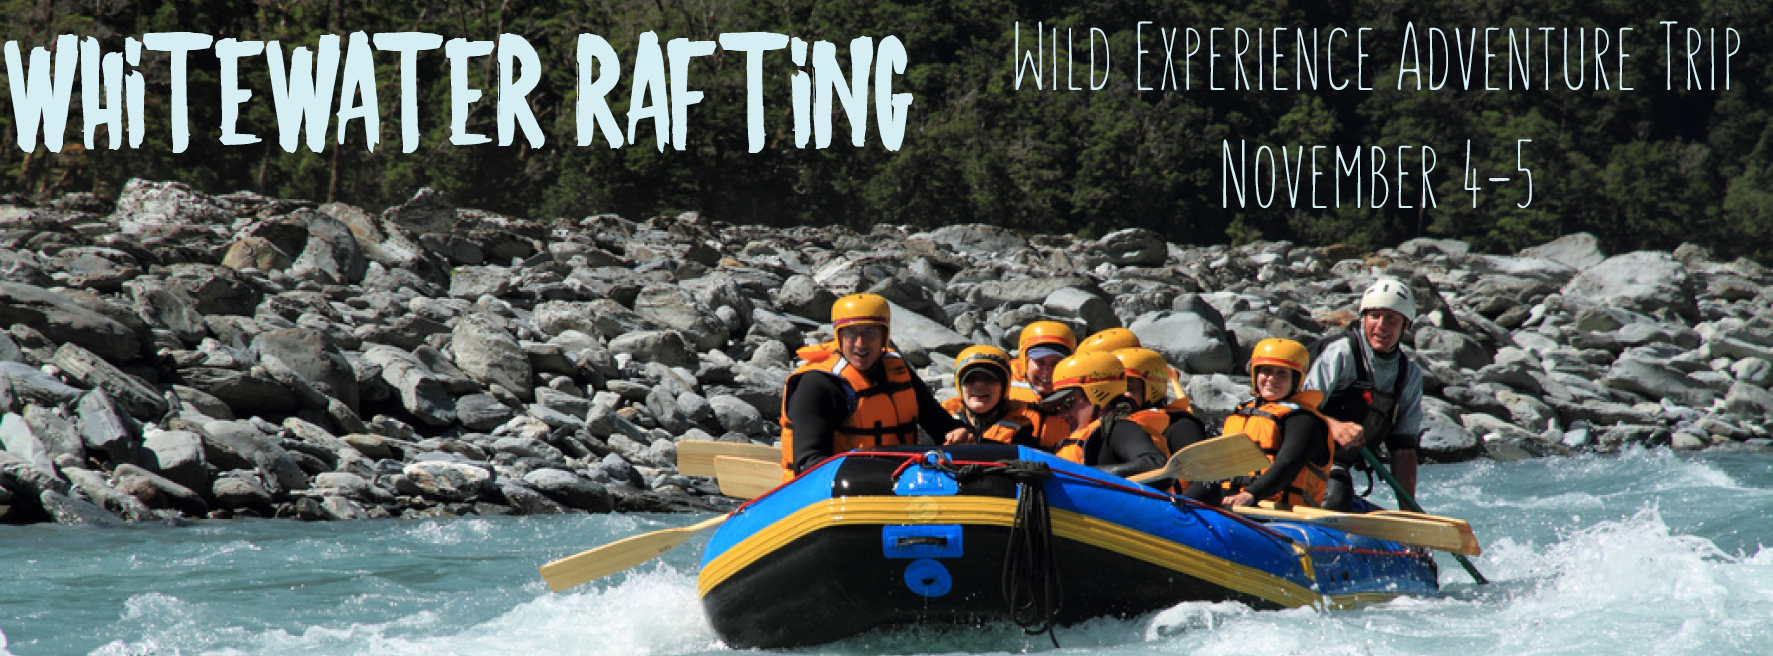 wild experience whitewater rafting adventure trip